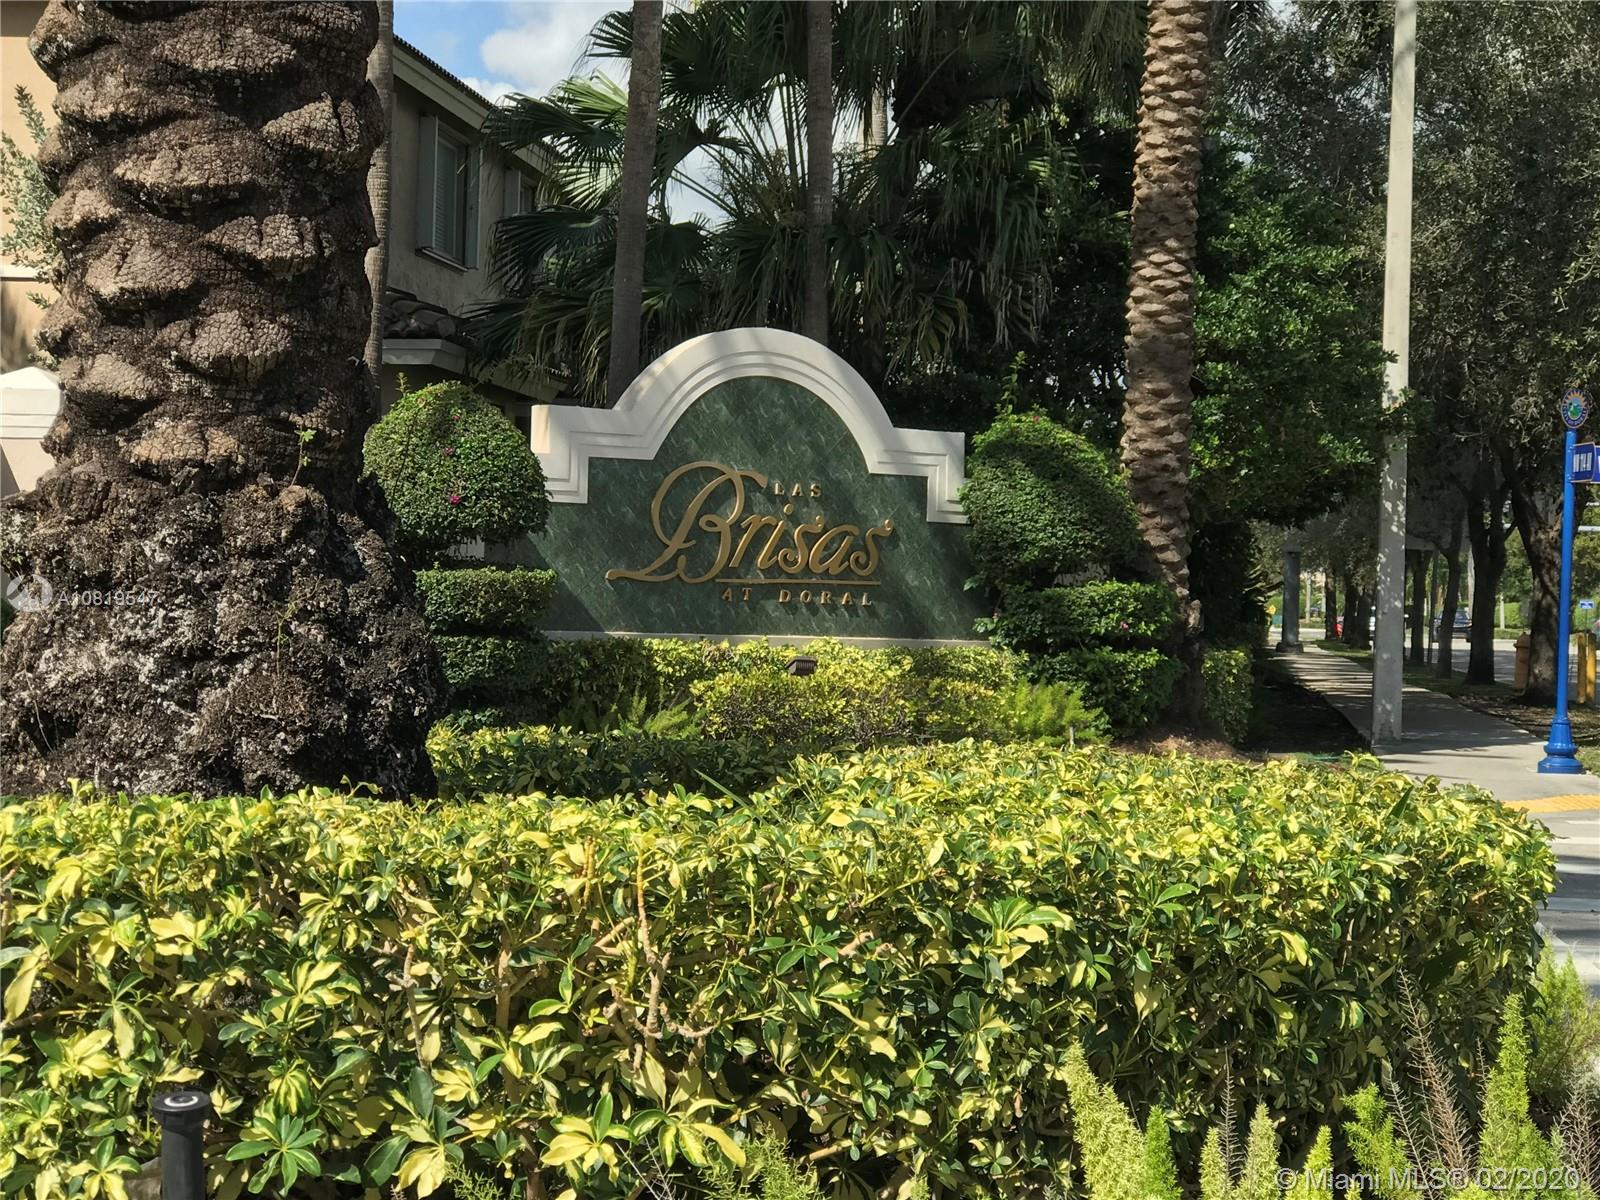 Photo - 5670 NW 116th Ave # 208, Doral FL 33178